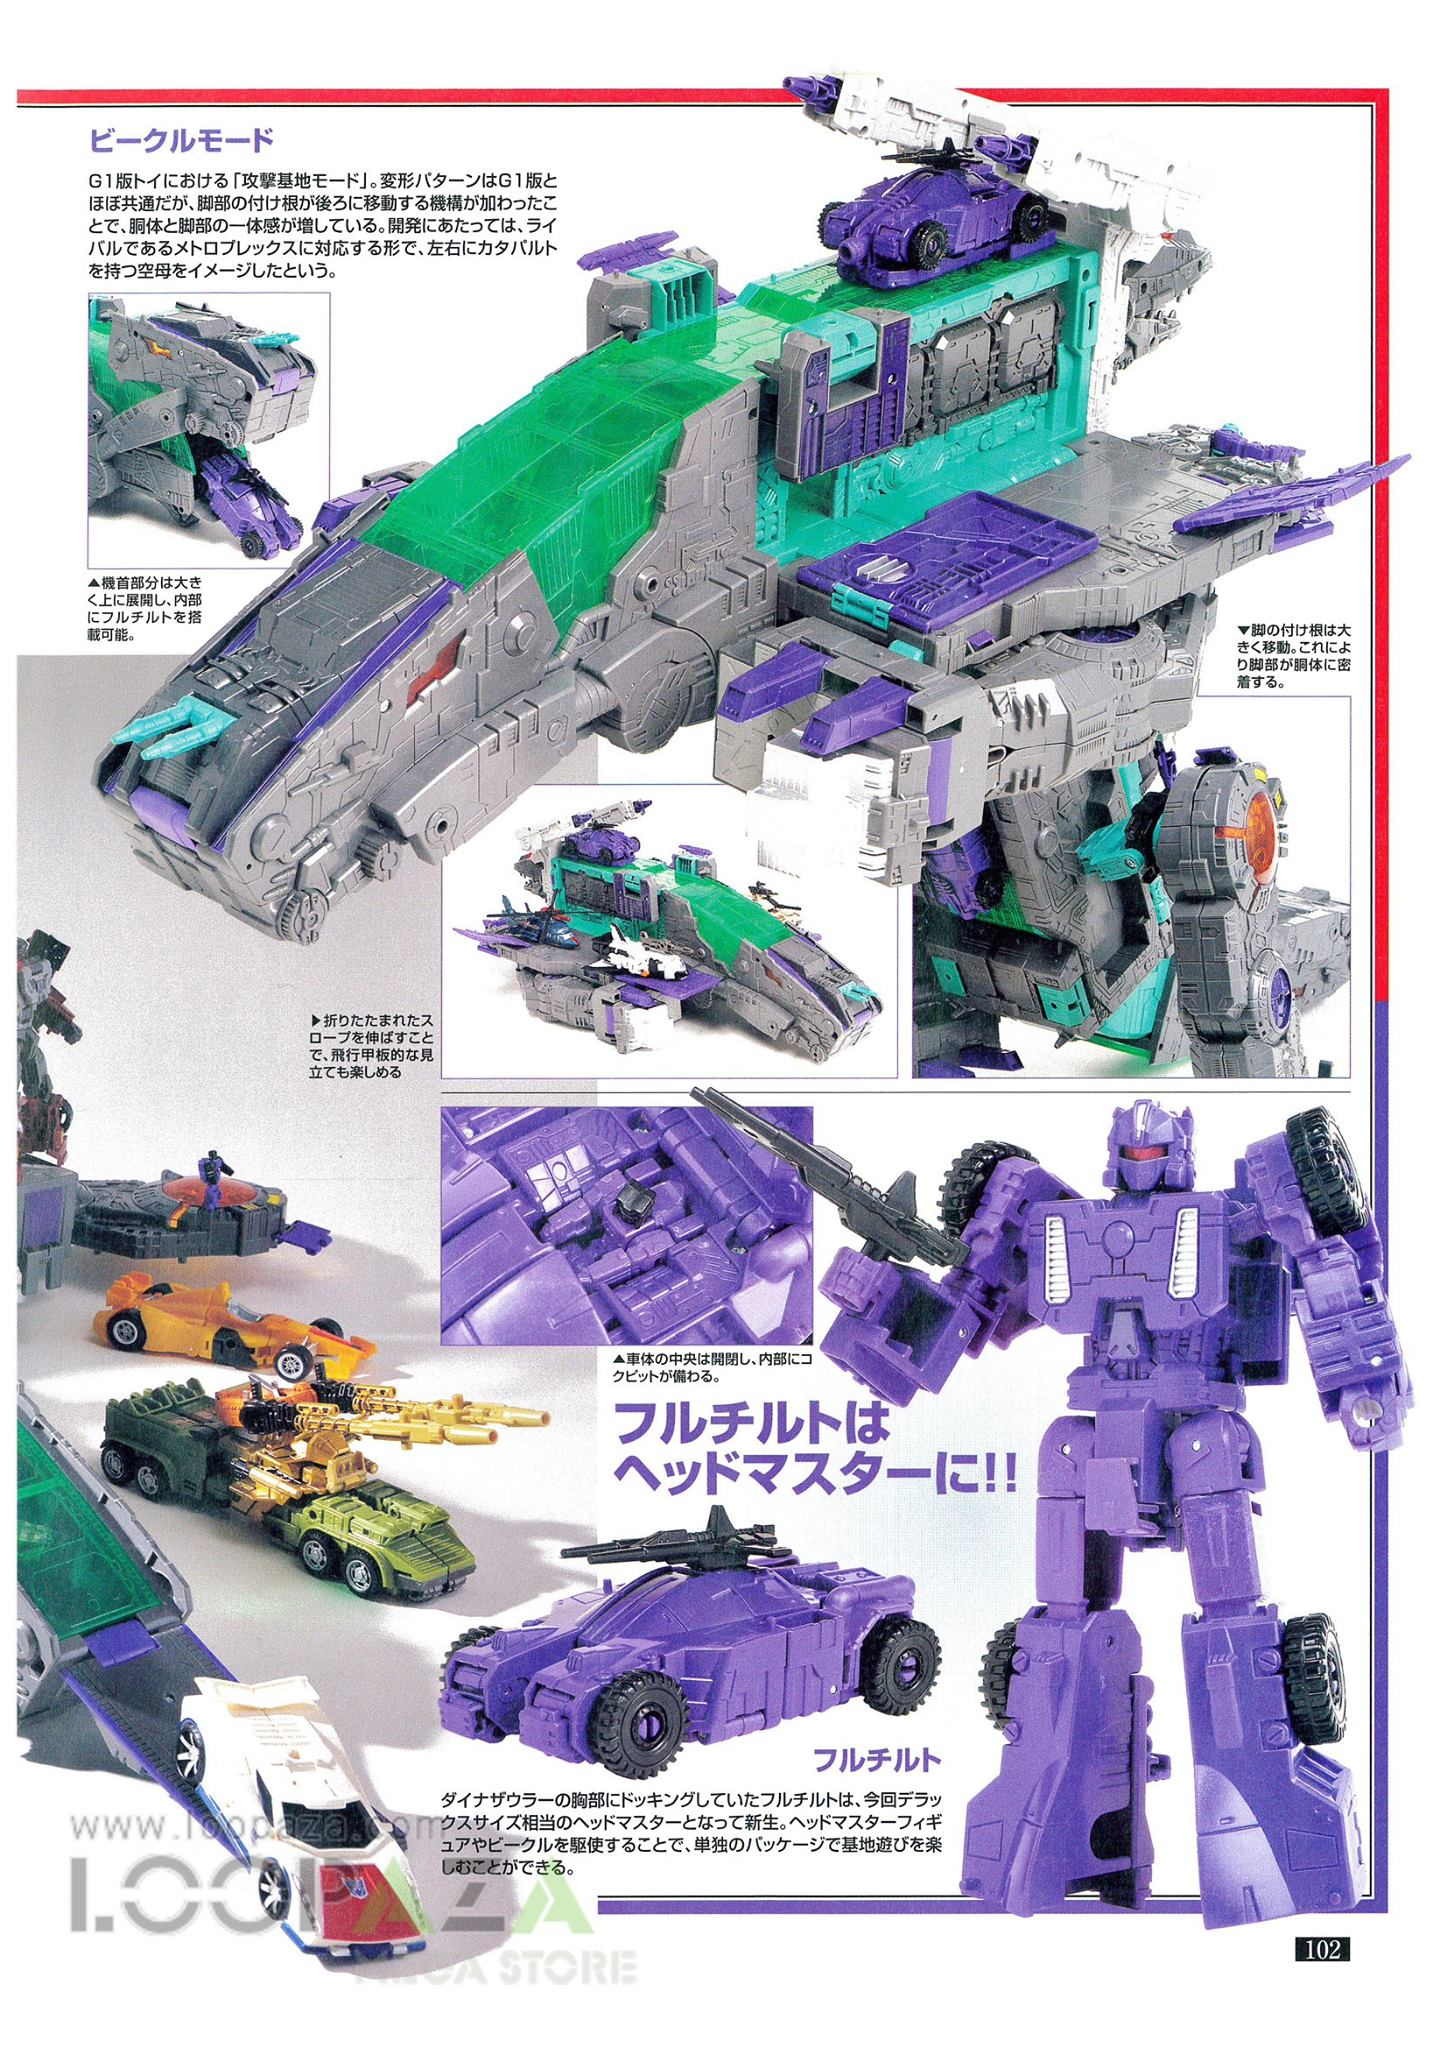 New Images Of Takara Legends Dinosaurer Trypticon